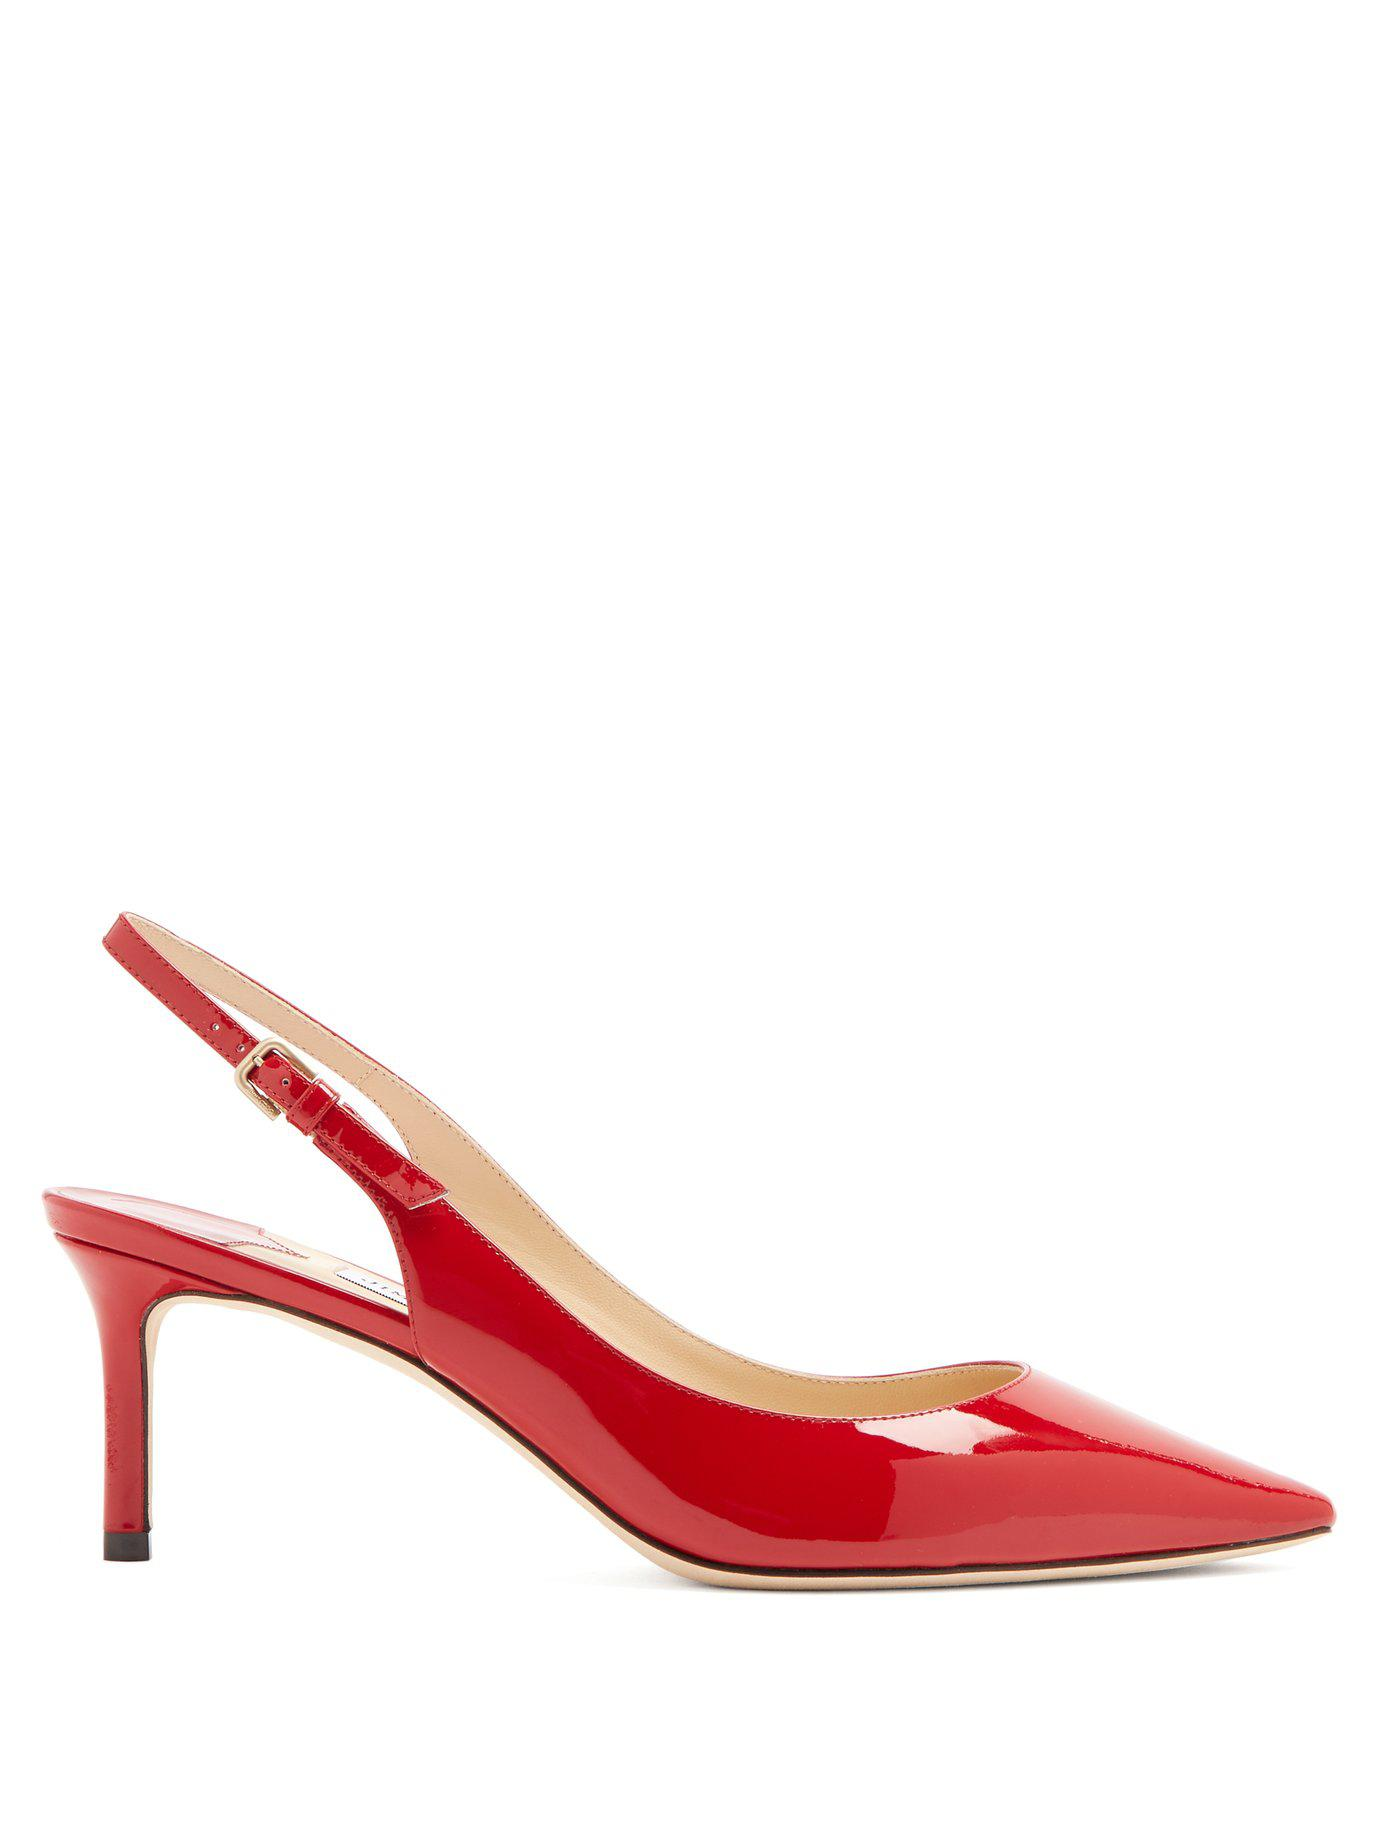 ad4e10bd94d7 Lyst - Jimmy Choo Erin 60 Slingback Patent Leather Pumps in Red